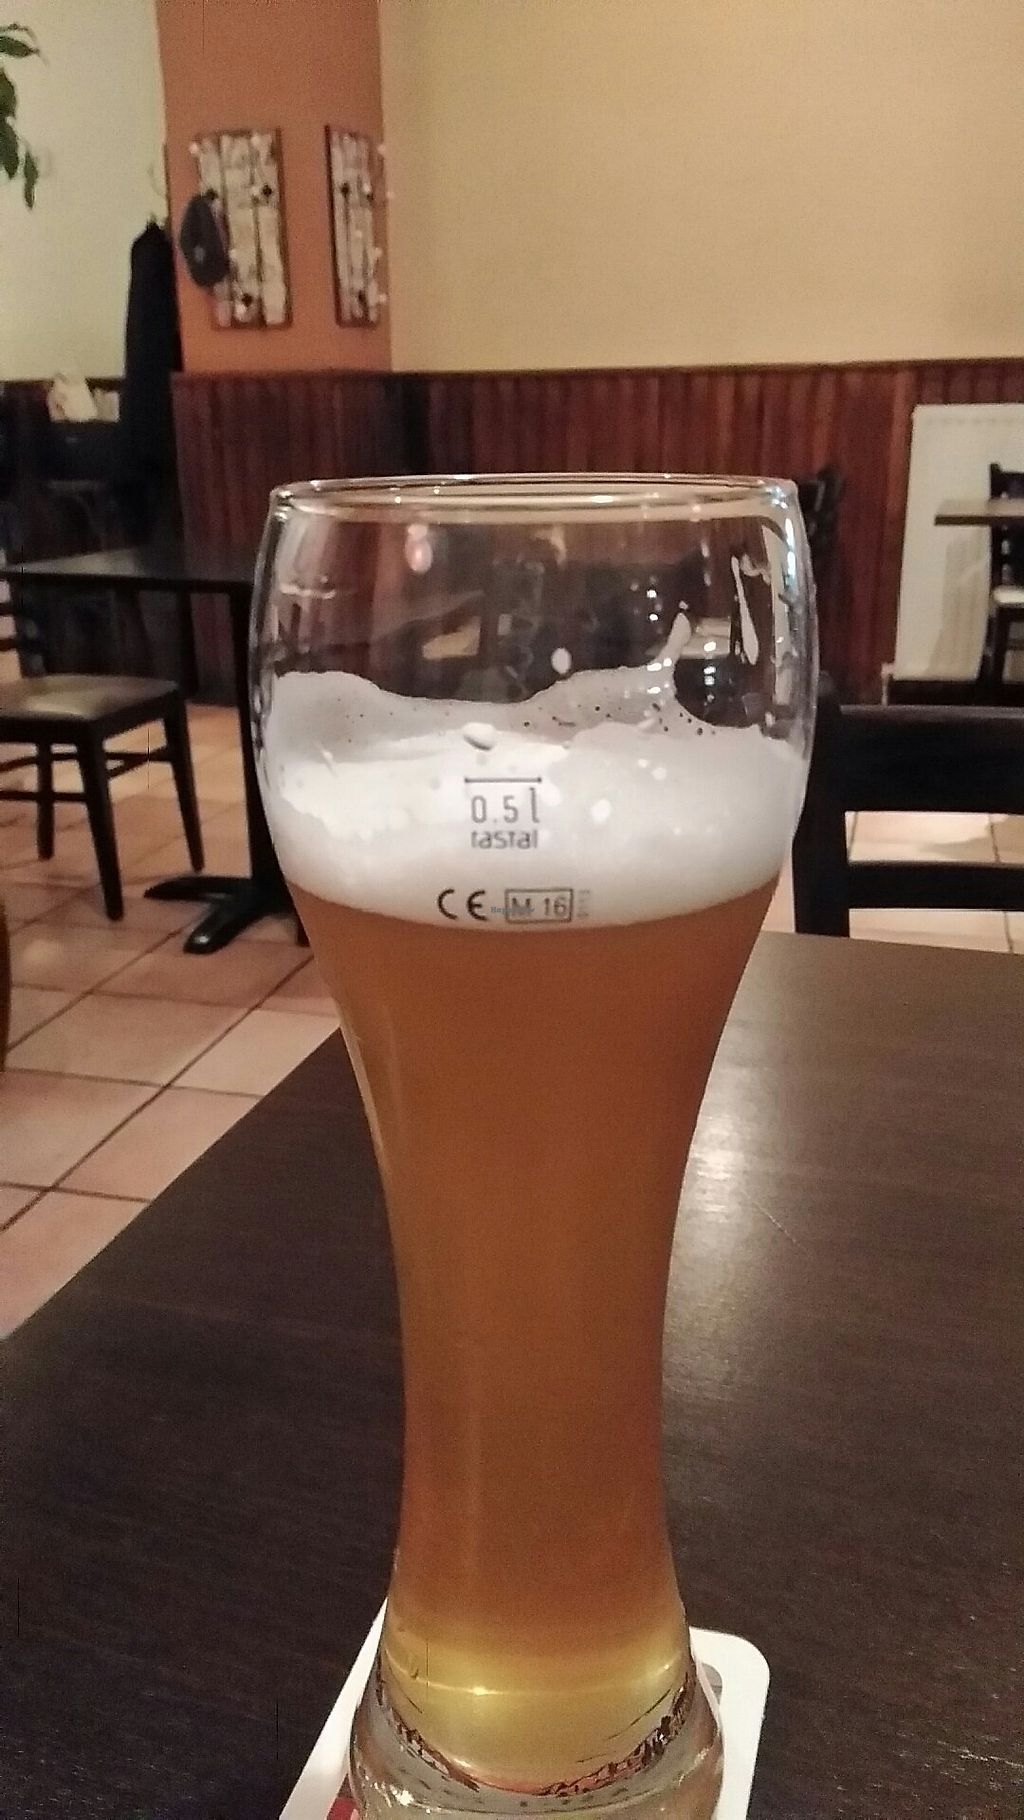 """Photo of Chay Viet  by <a href=""""/members/profile/eusouorocha"""">eusouorocha</a> <br/>They have beers :)  <br/> August 9, 2017  - <a href='/contact/abuse/image/31988/290909'>Report</a>"""